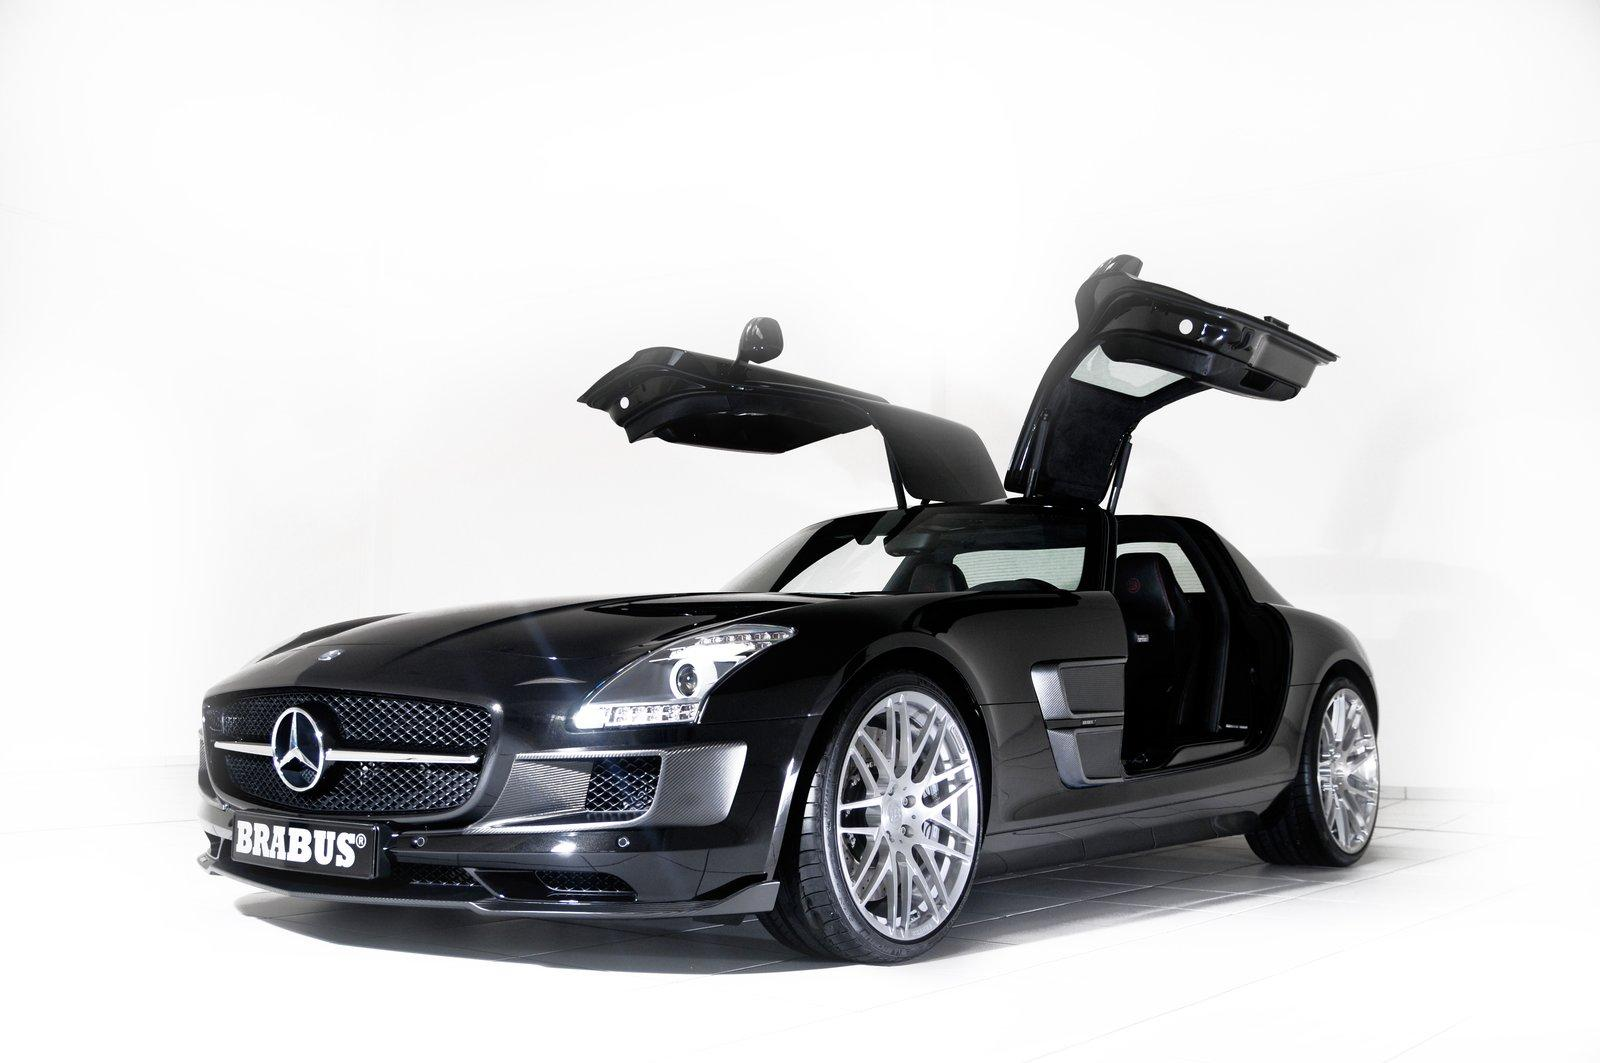 Mercedes benz sls class tuning pictures for Mercedes benz sls class